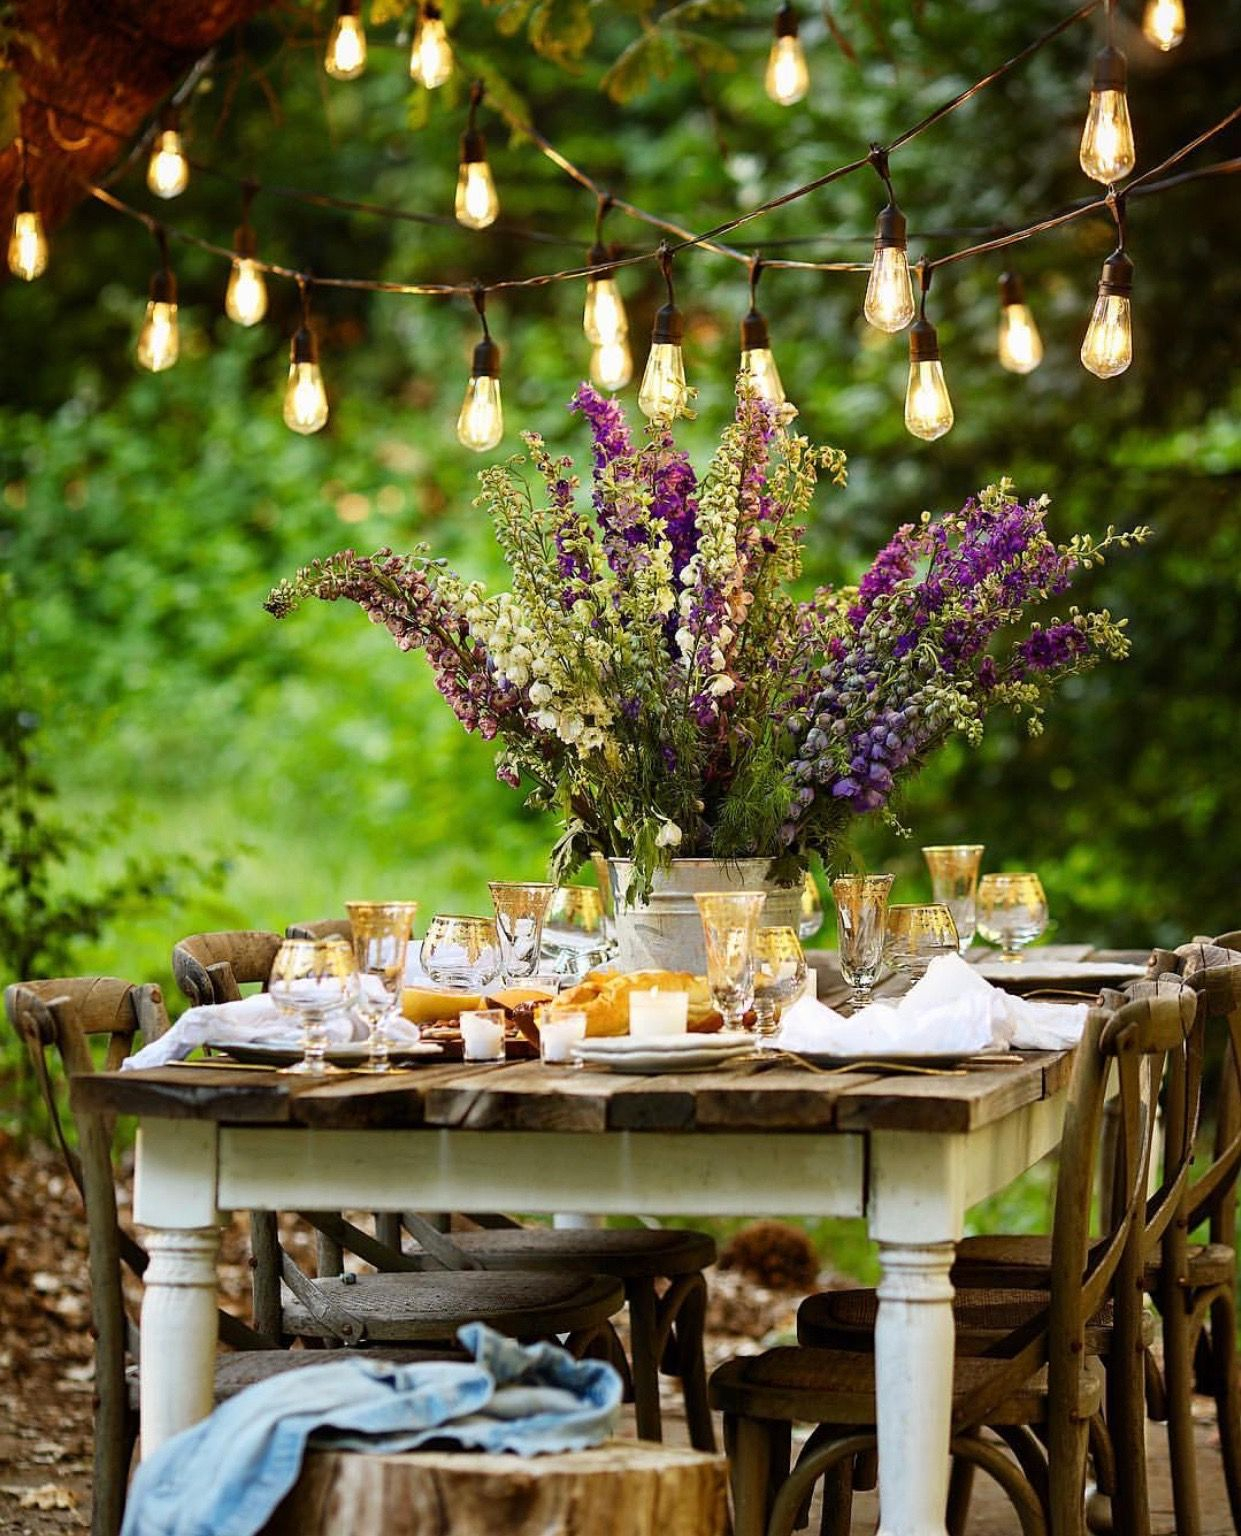 8 Charming Outdoor Party Decoration Ideas Moms Birthday in 14 Some of the Coolest Ways How to Makeover Backyard Party Decoration Ideas